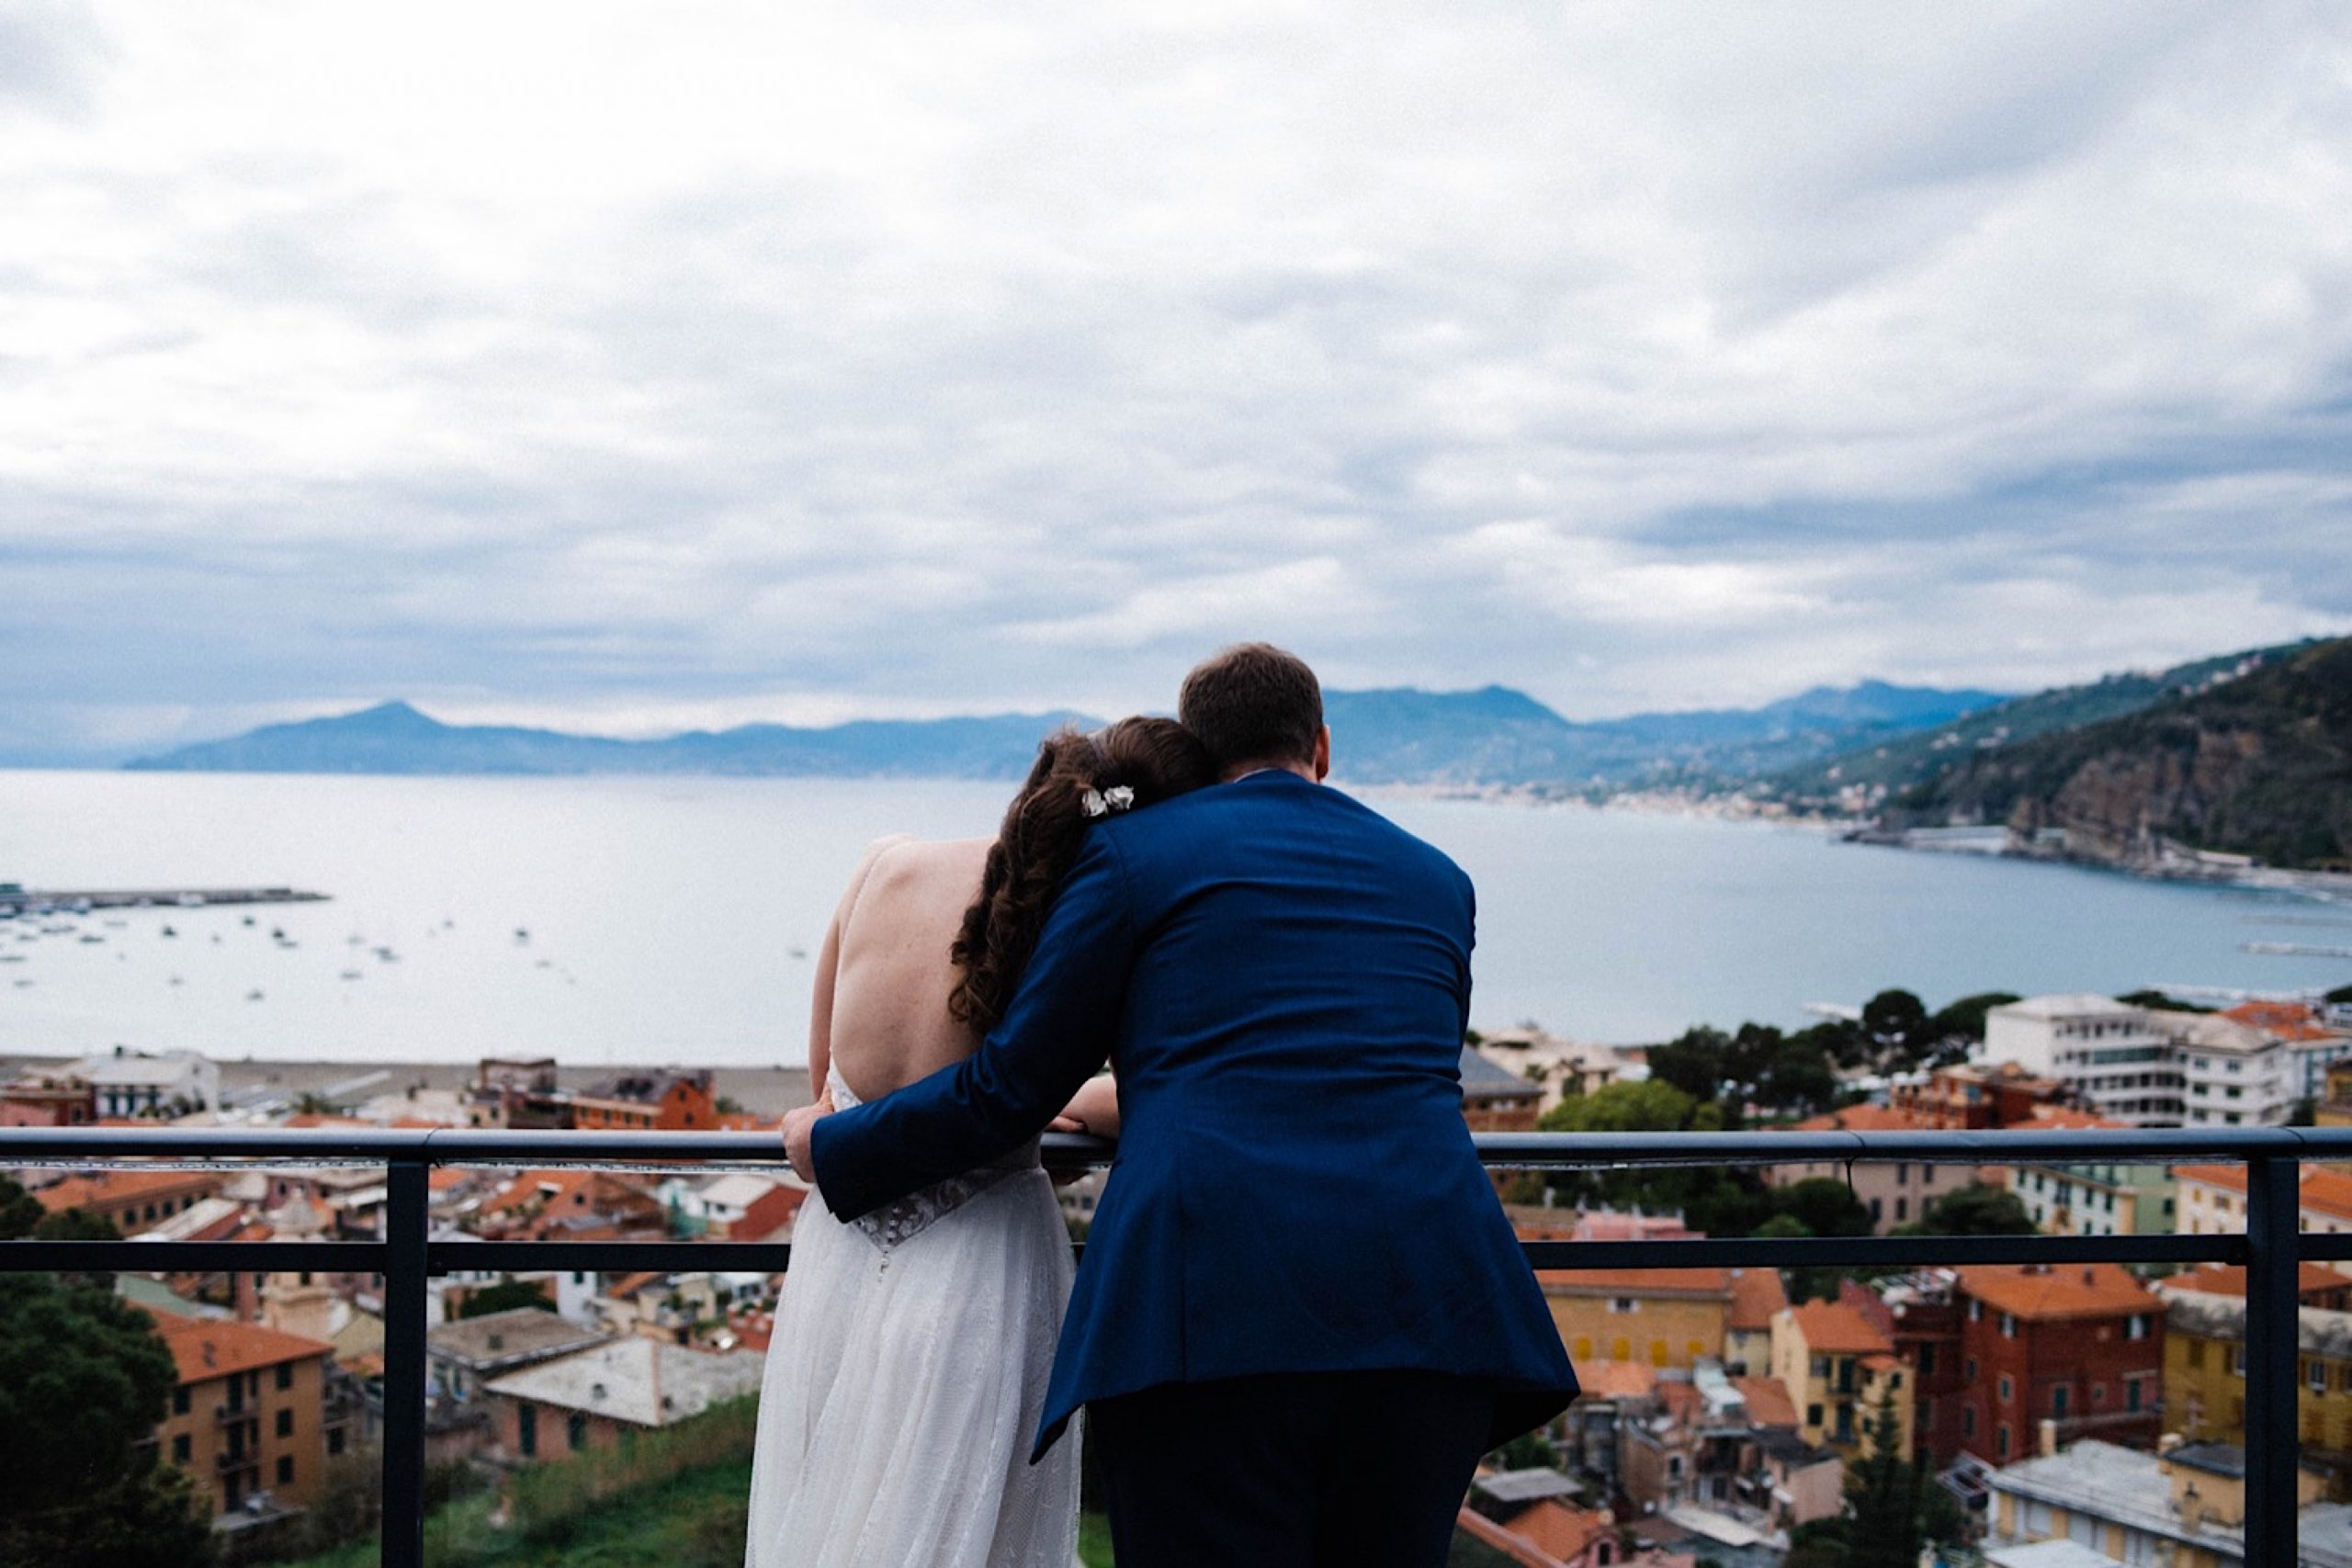 A relaxed wedding portrait of the bride & groom looking out over the Bay of Fables in Sestri Levante, from the Hotel Vis À Vis Rooftop.